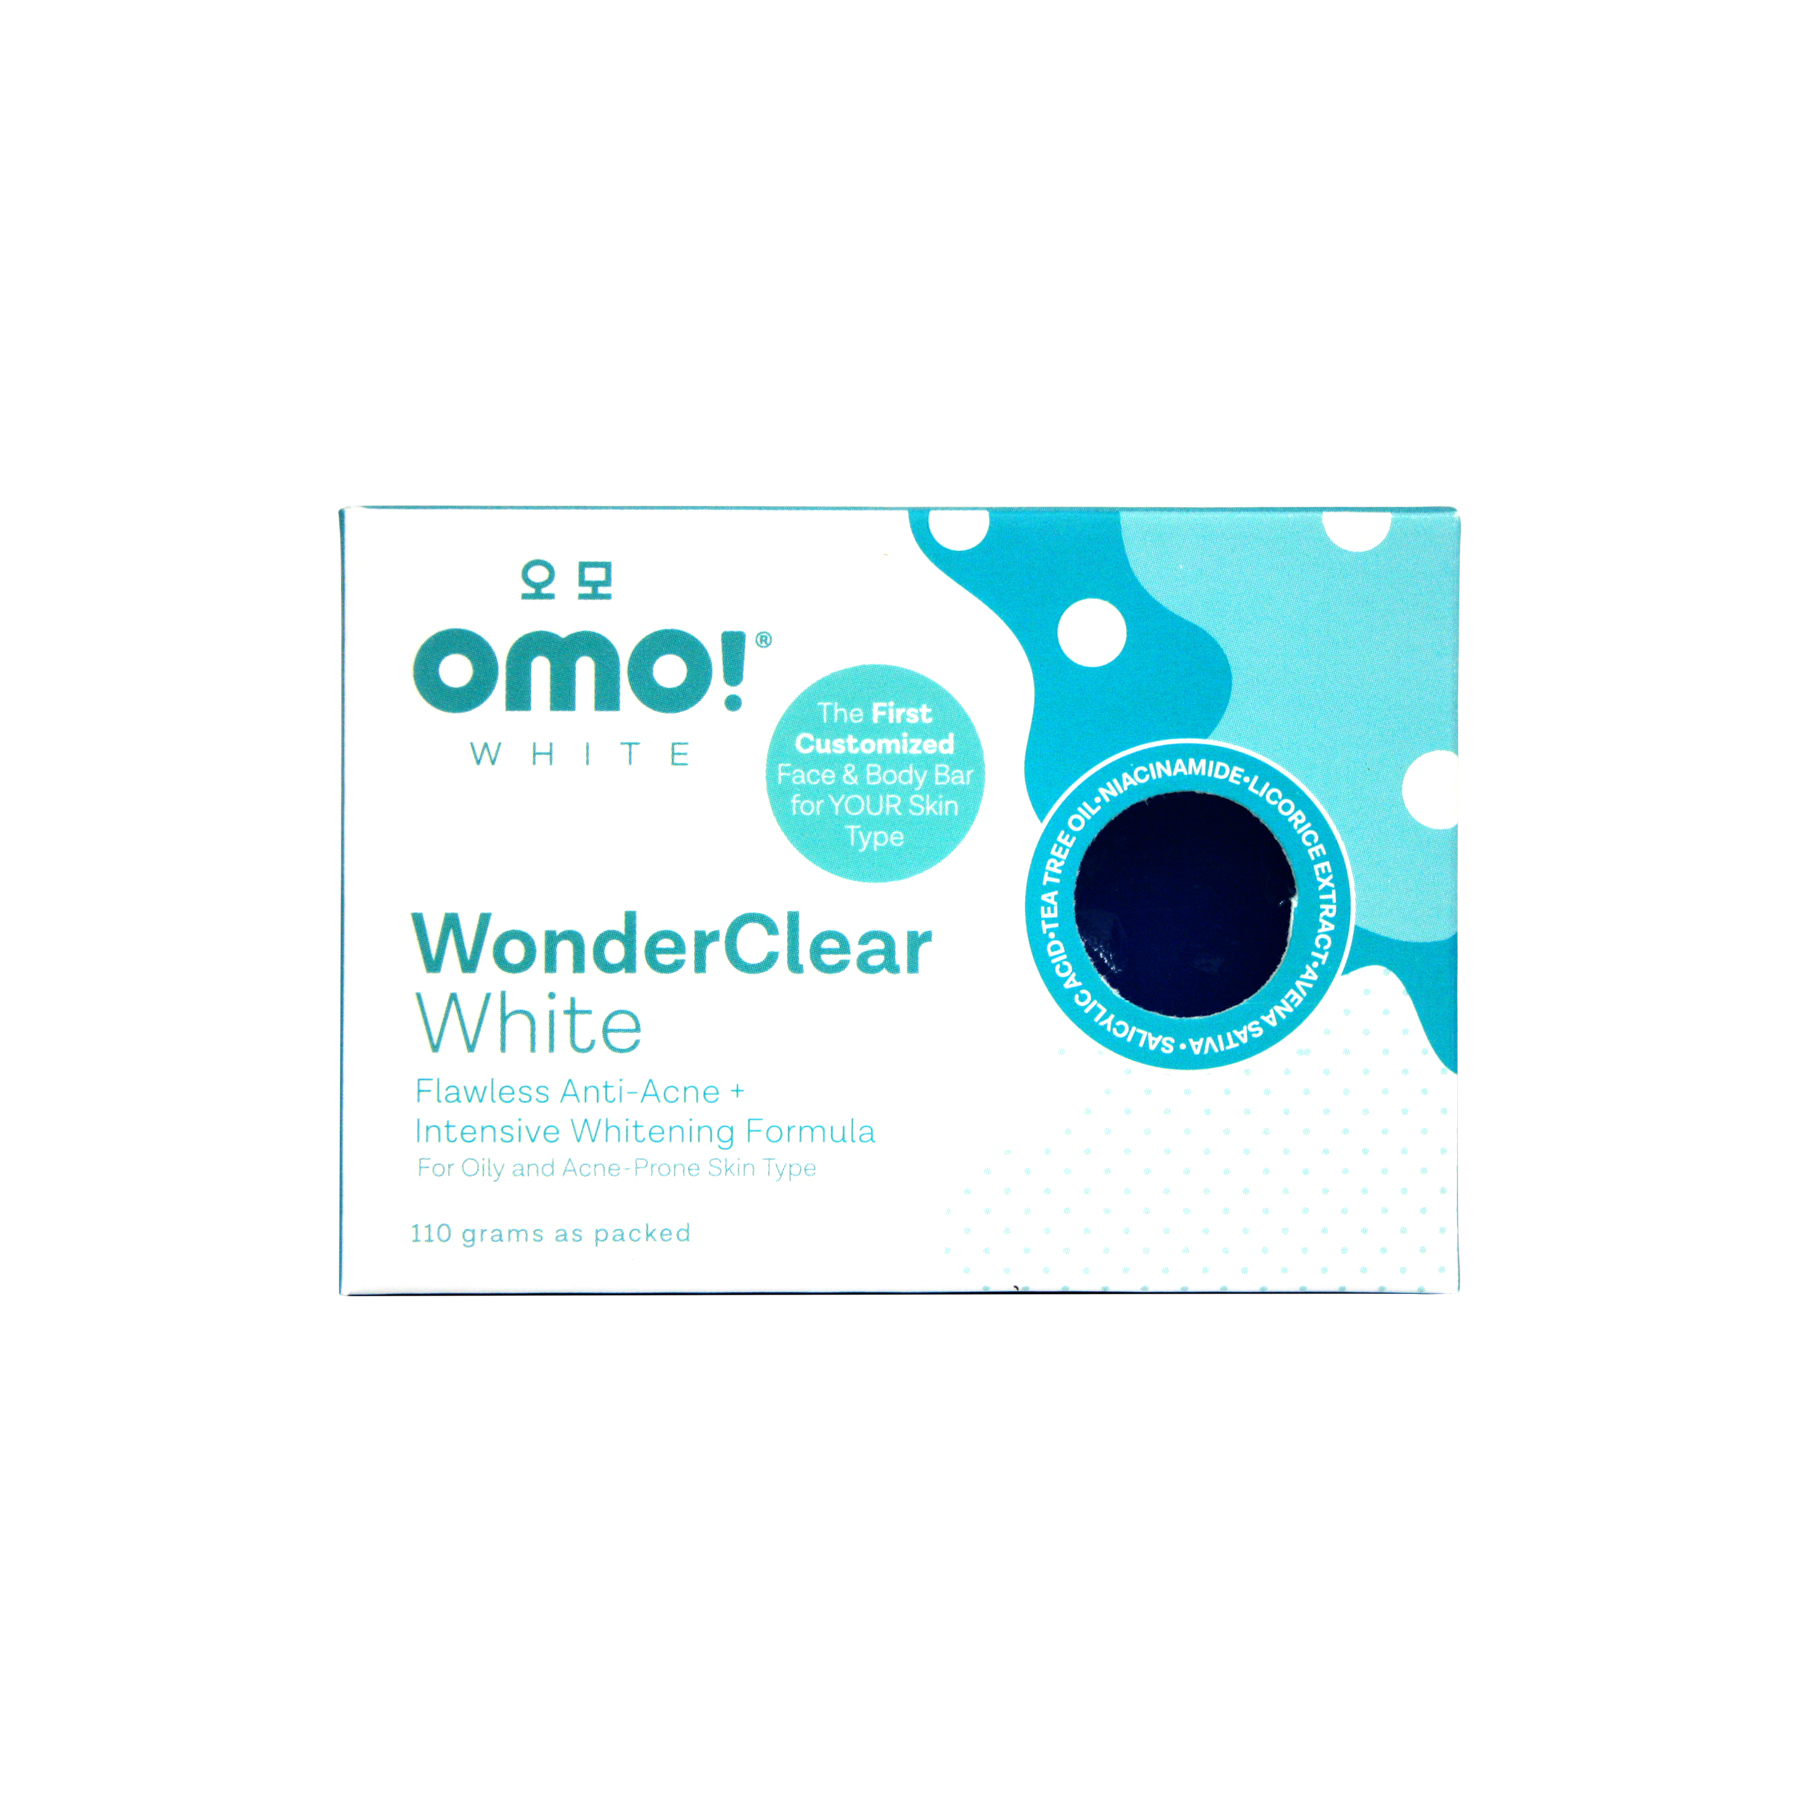 White WonderClear Flawless Anti-Acne + Intensive Whitening Formula Face & Body Soap (110g) by OMO! White